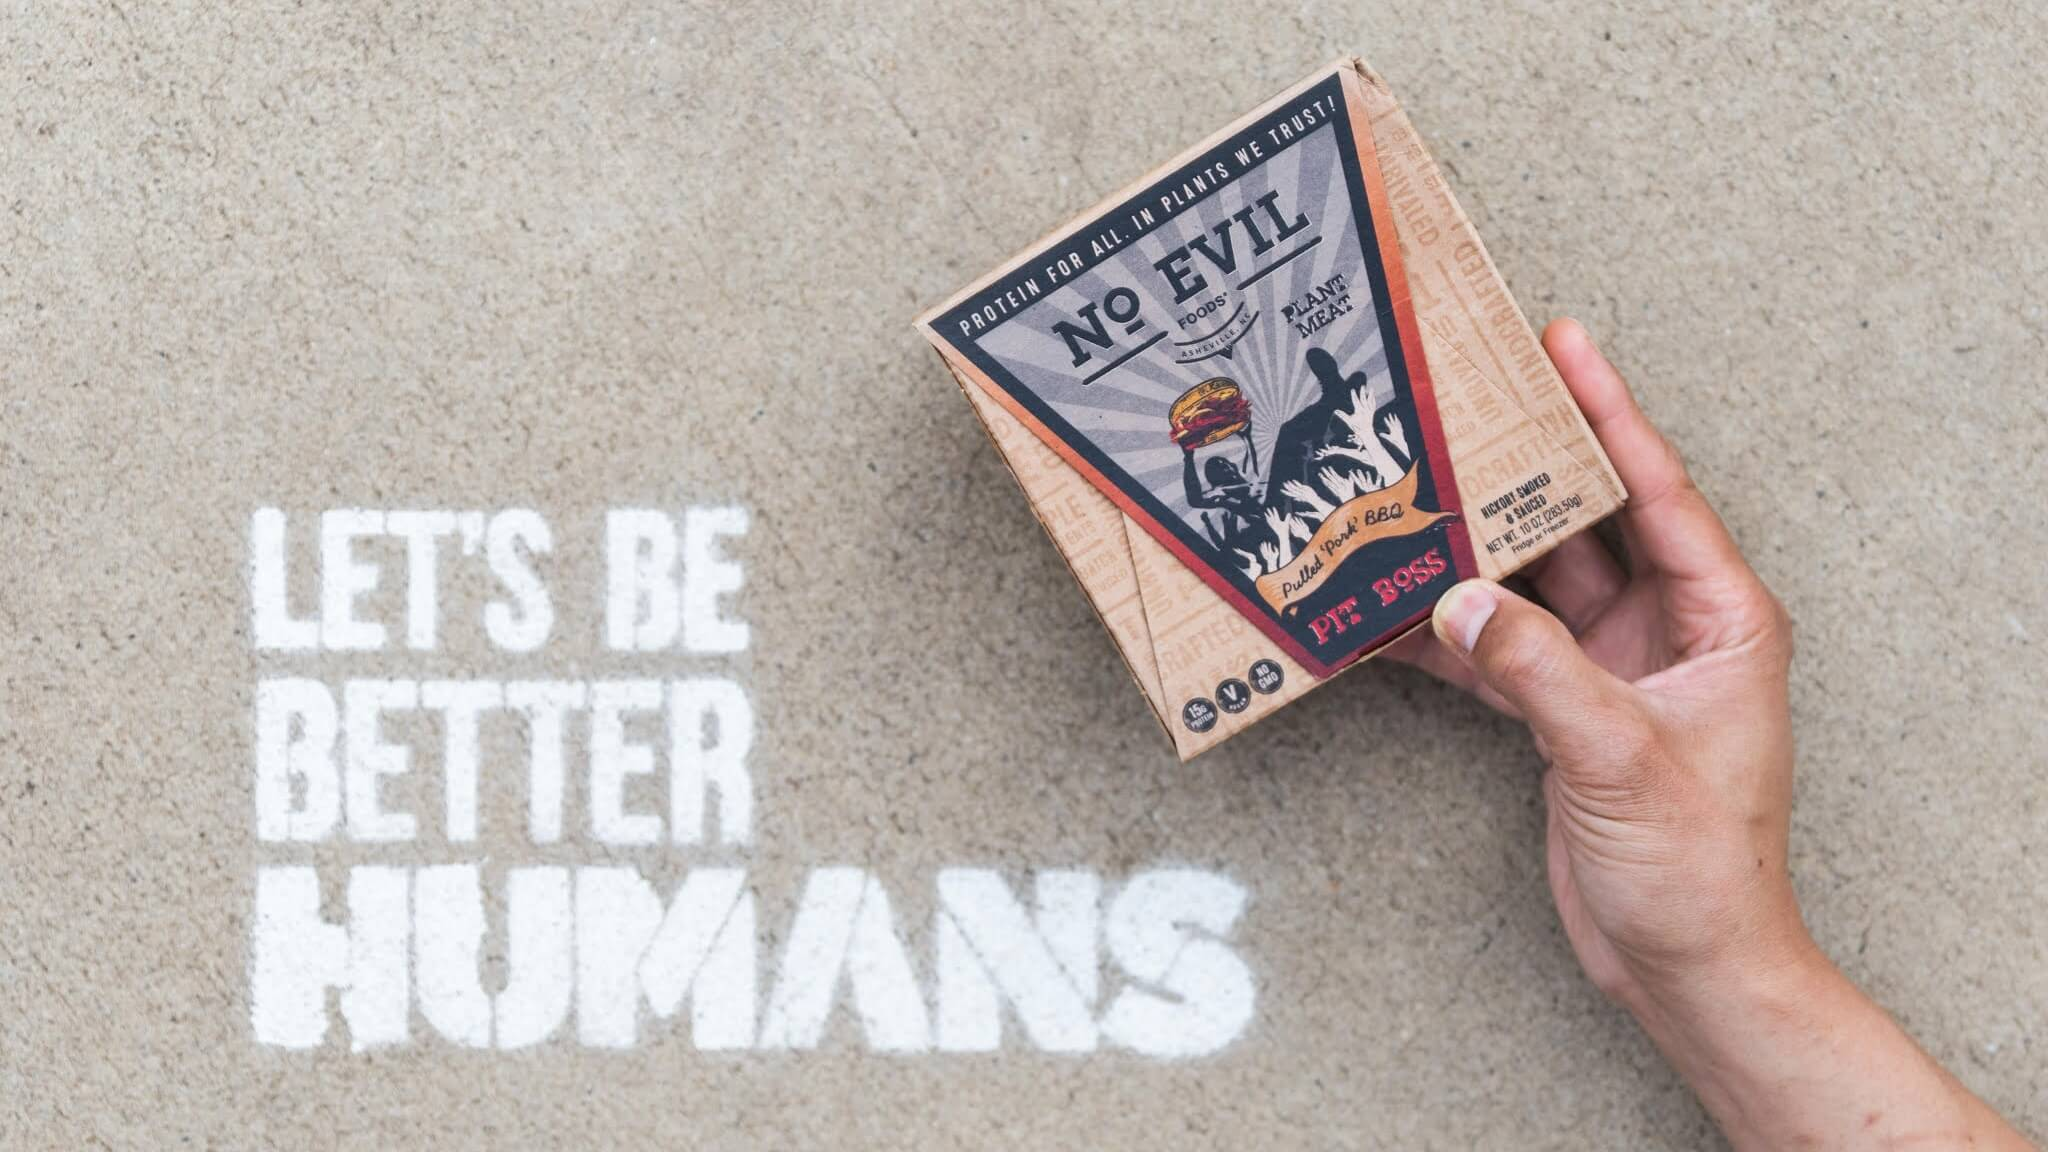 This Vegan Meat Company Is Taking the Evil Out of the Food System